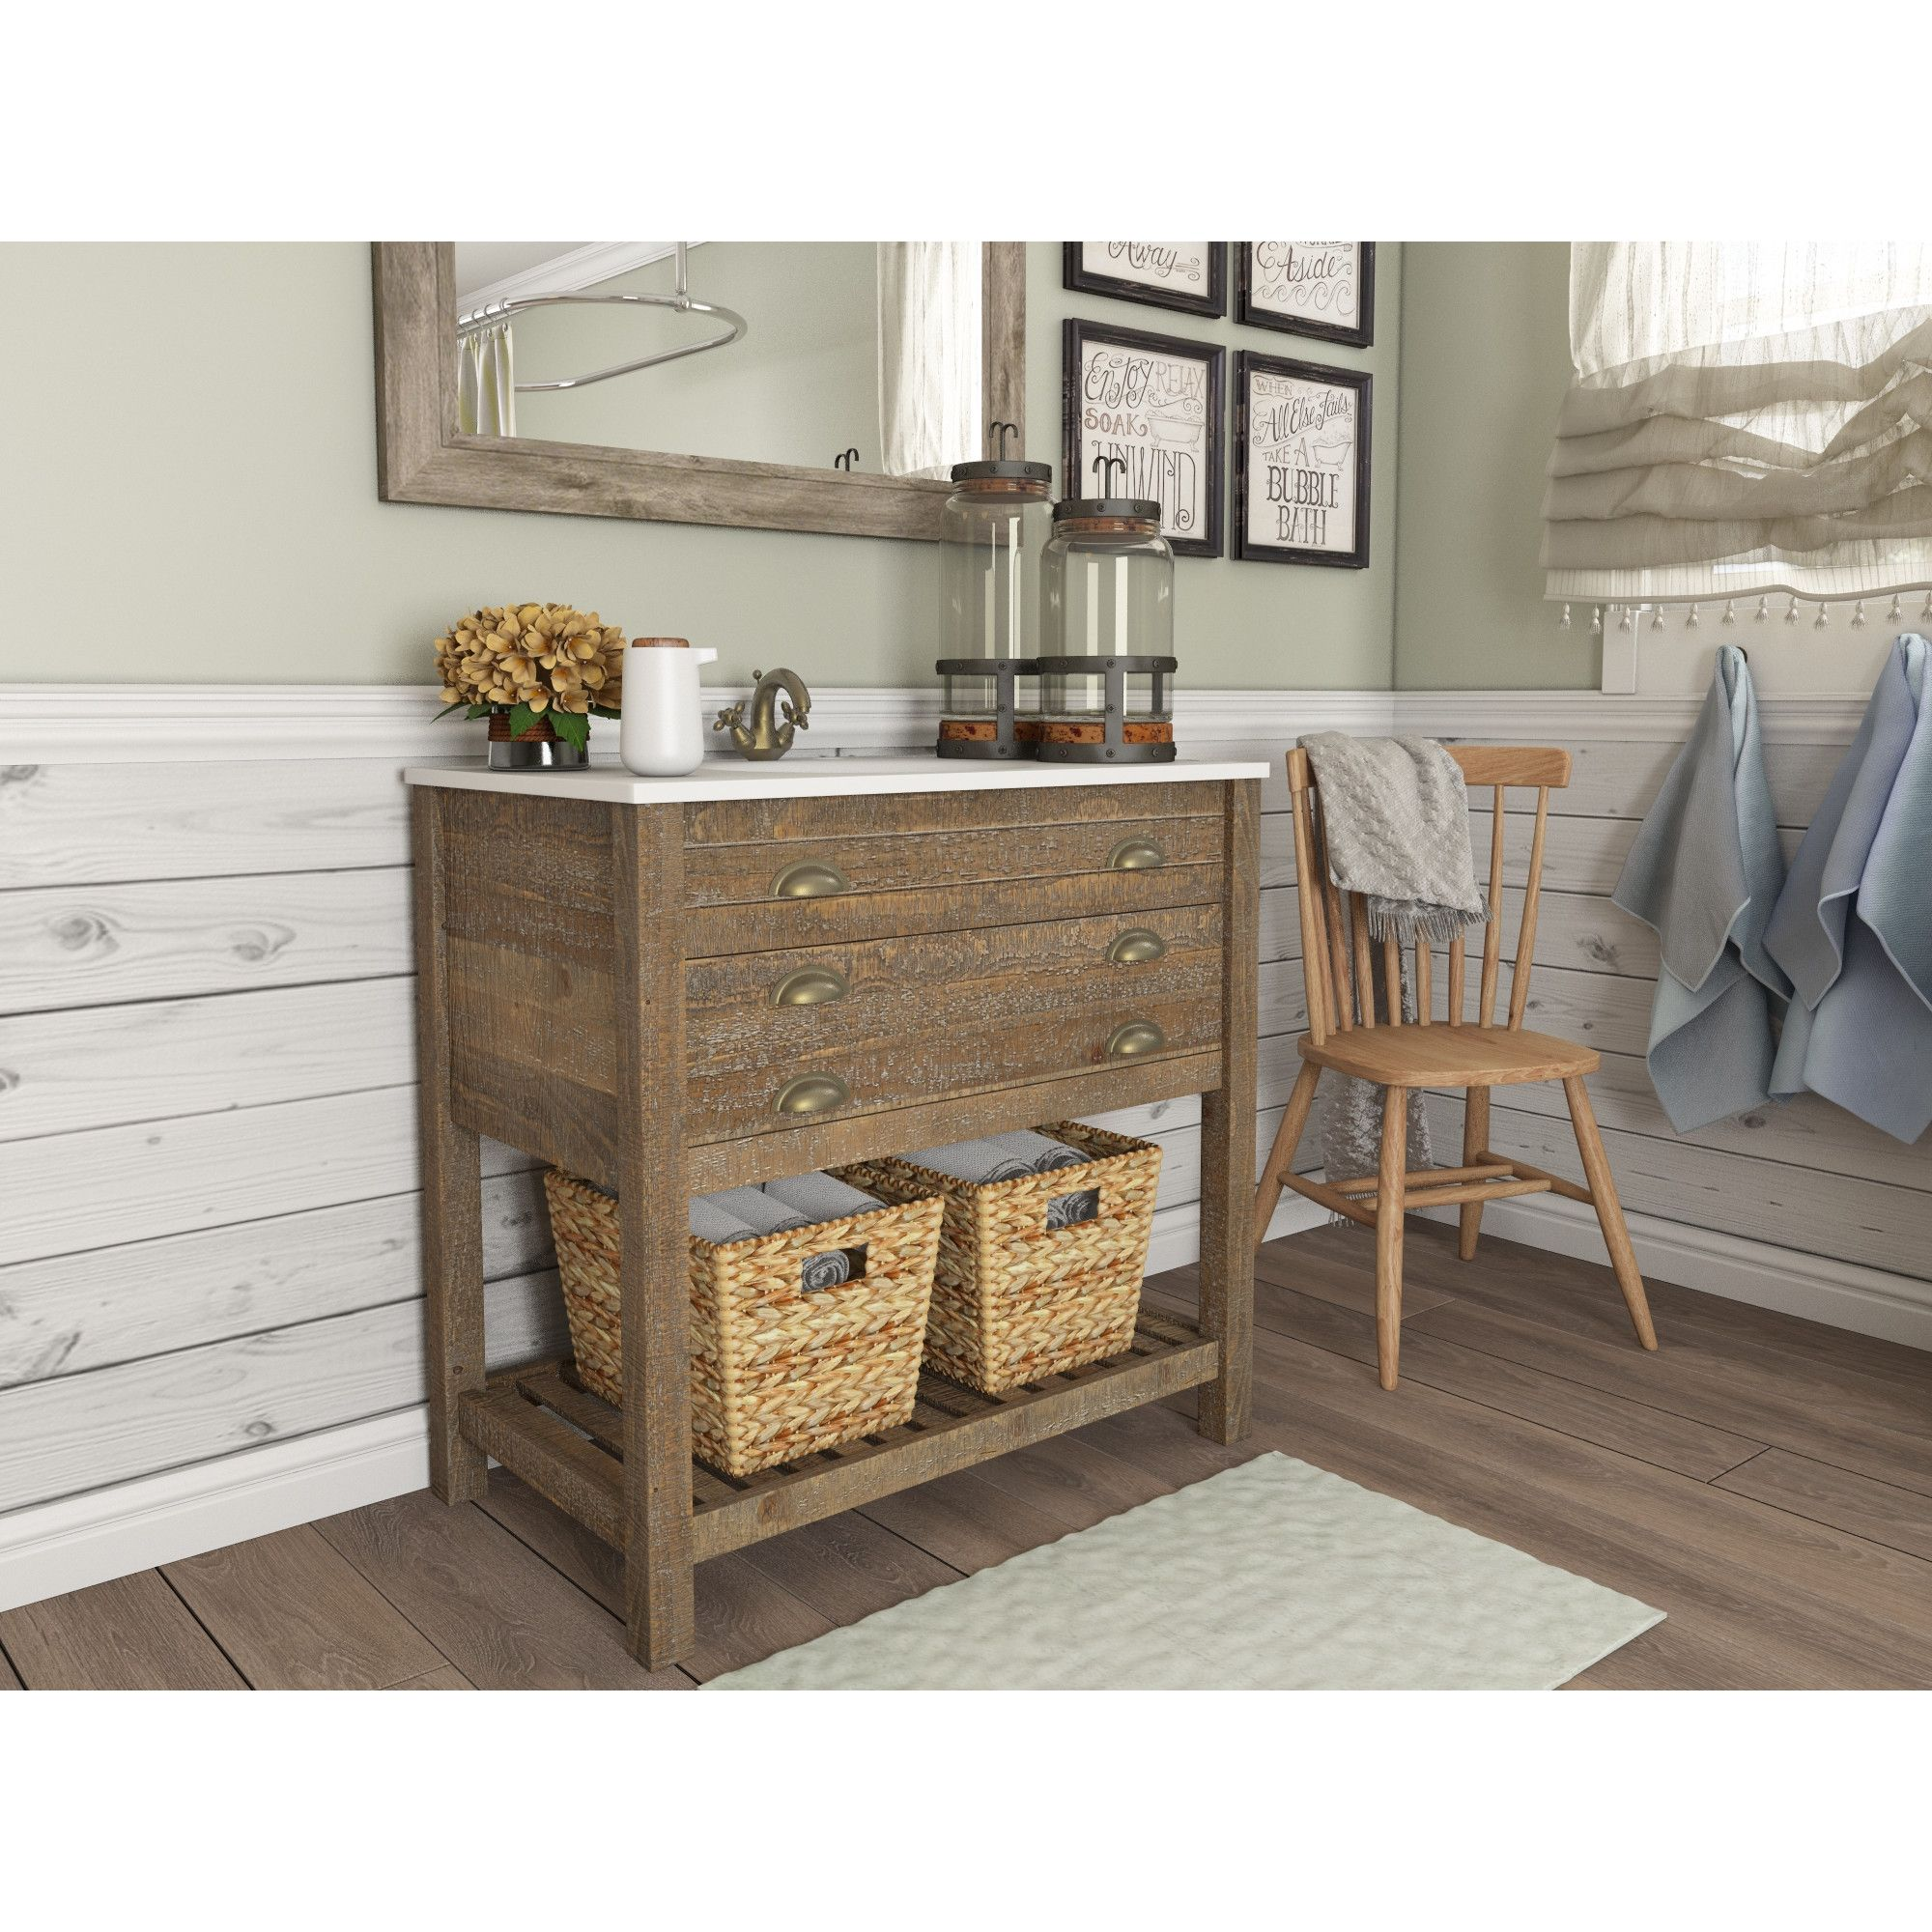 Sets bathroom vanity ari kitchen second - August Grove Gabrielle 36 Single Bathroom Vanity